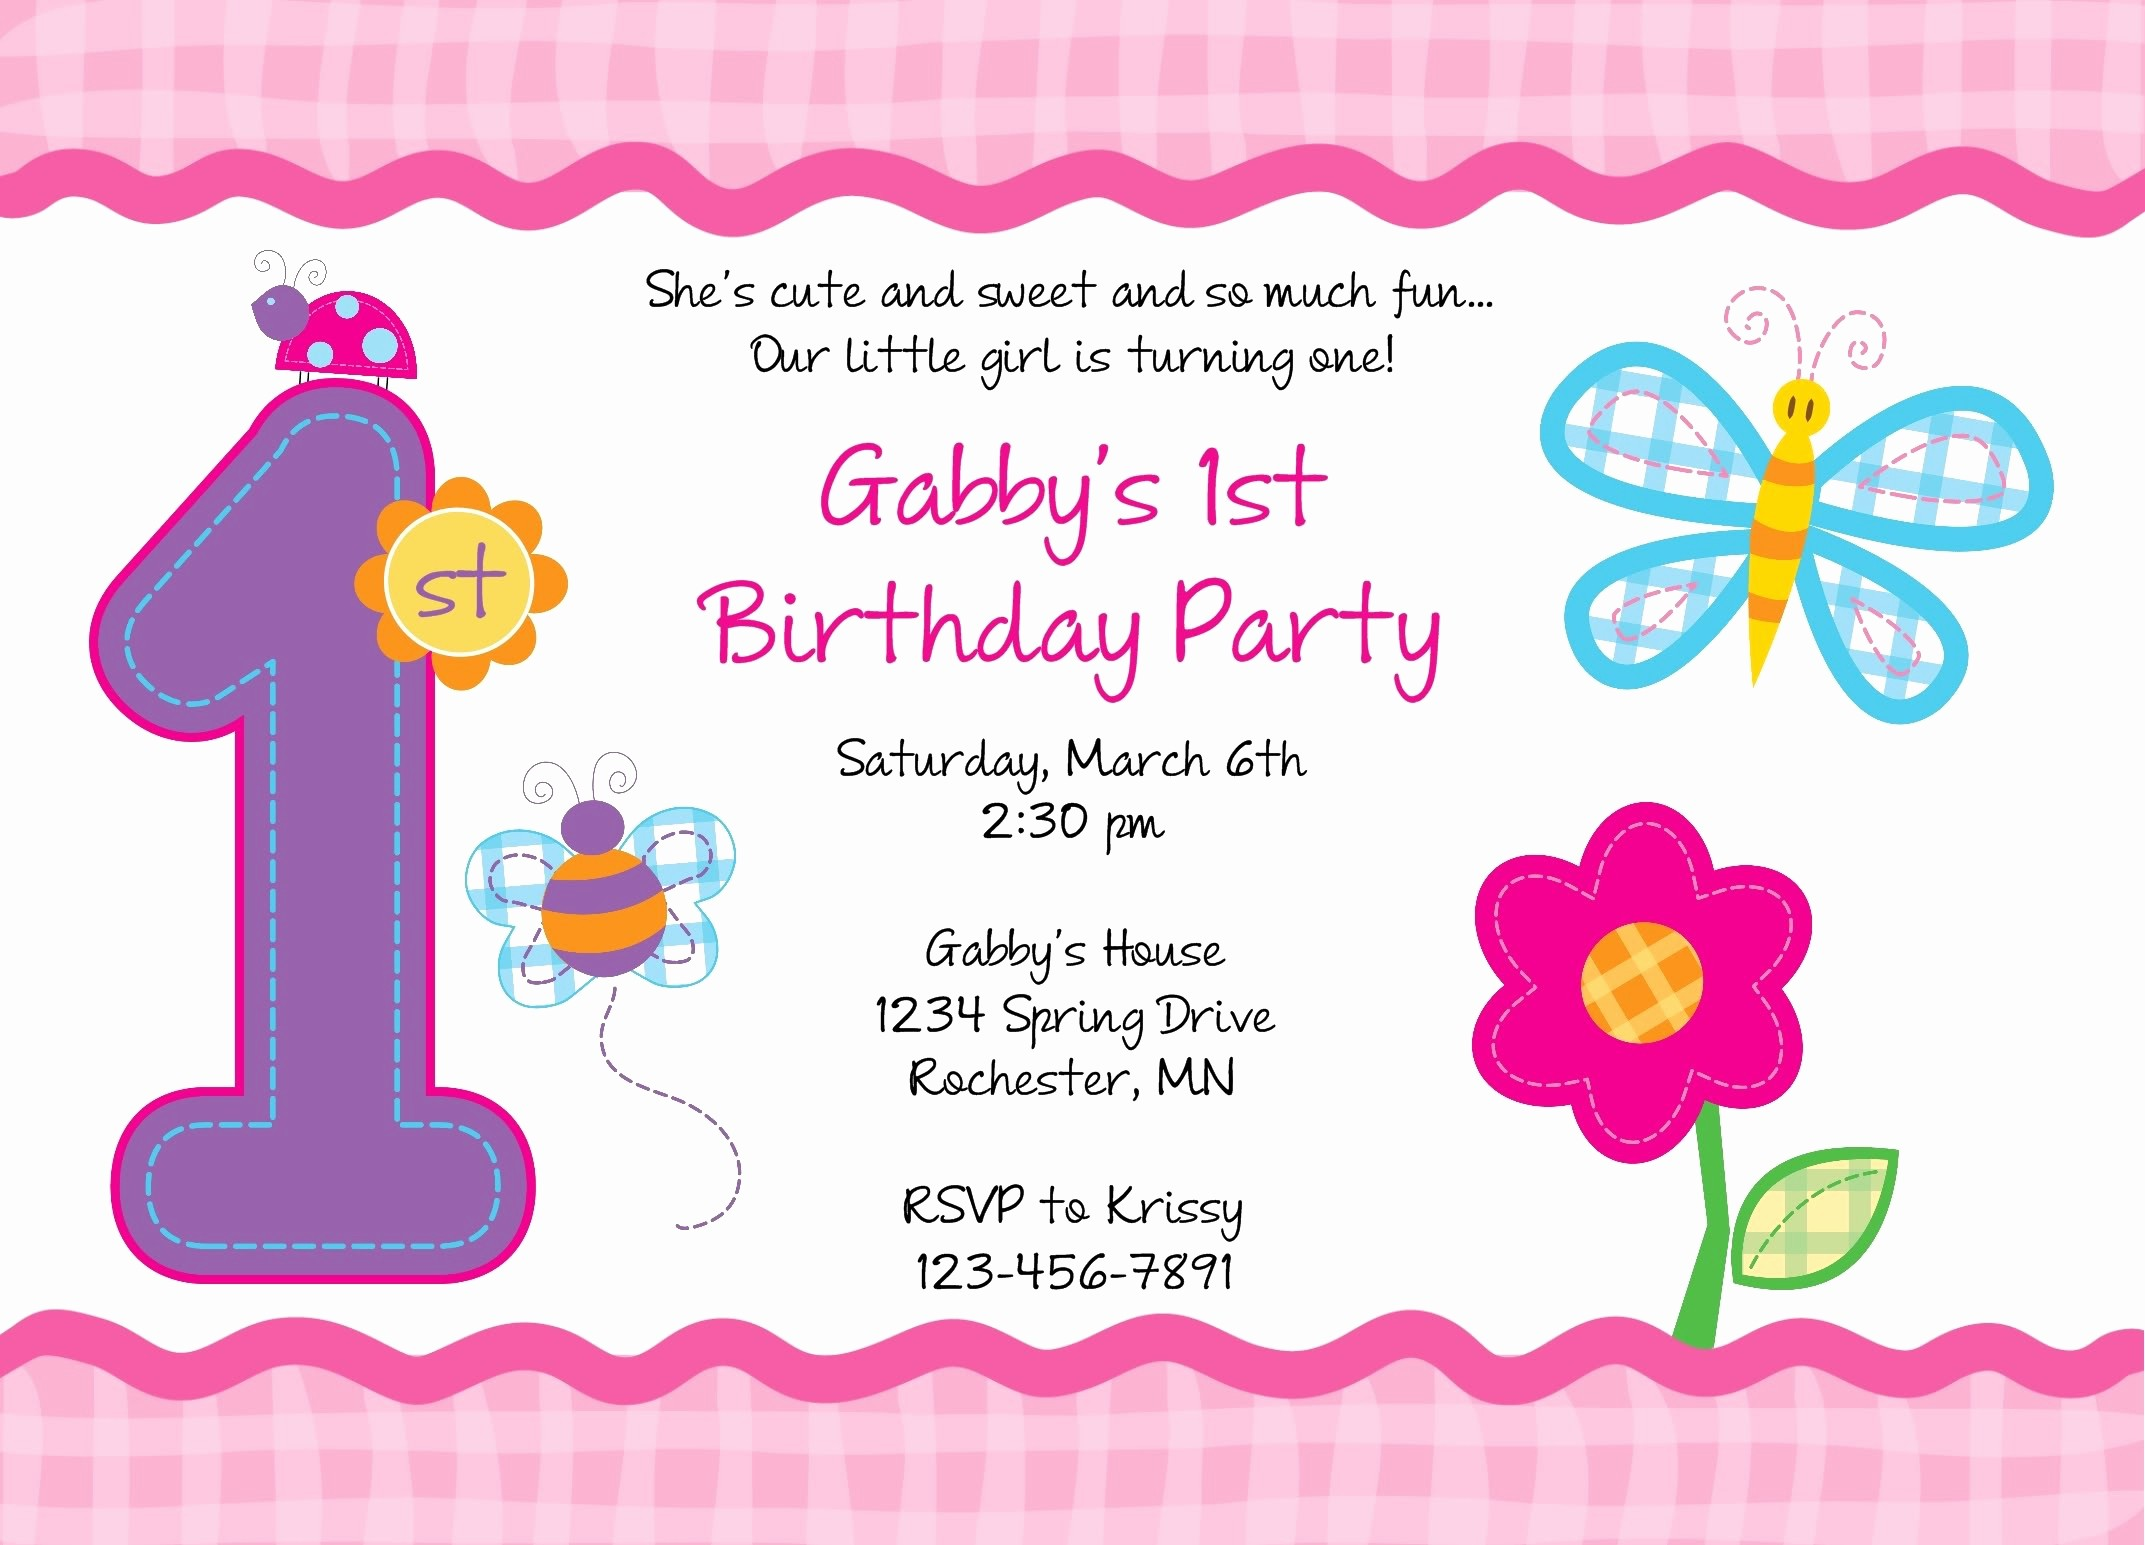 Birthday Party Invitation Card Template Beautiful Editable 1st Birthday Invitation Card Free Download Jin